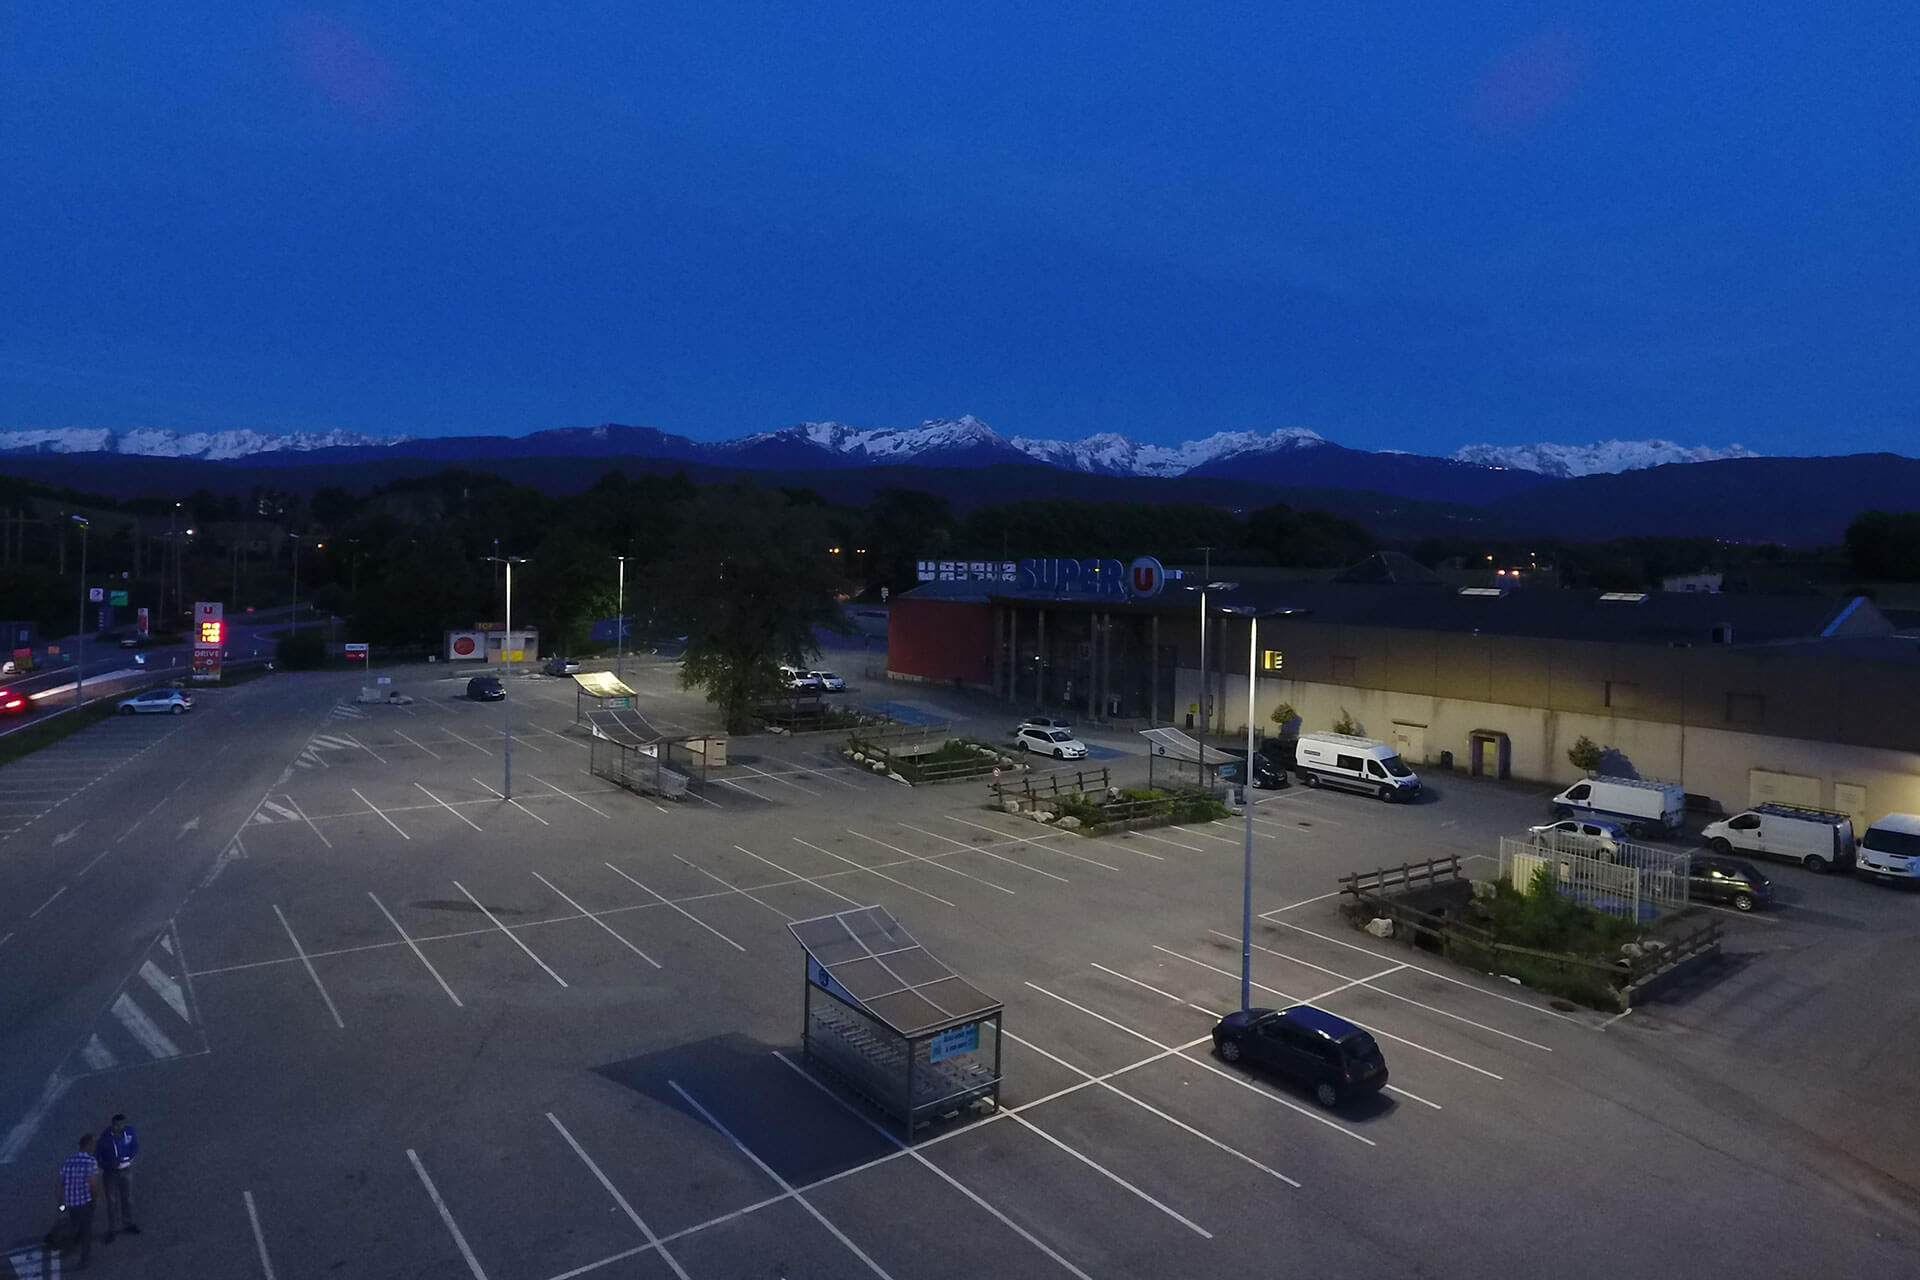 Schréder outdoor lighting solution improves visibility for a better customer experience at Super U in Montmelian